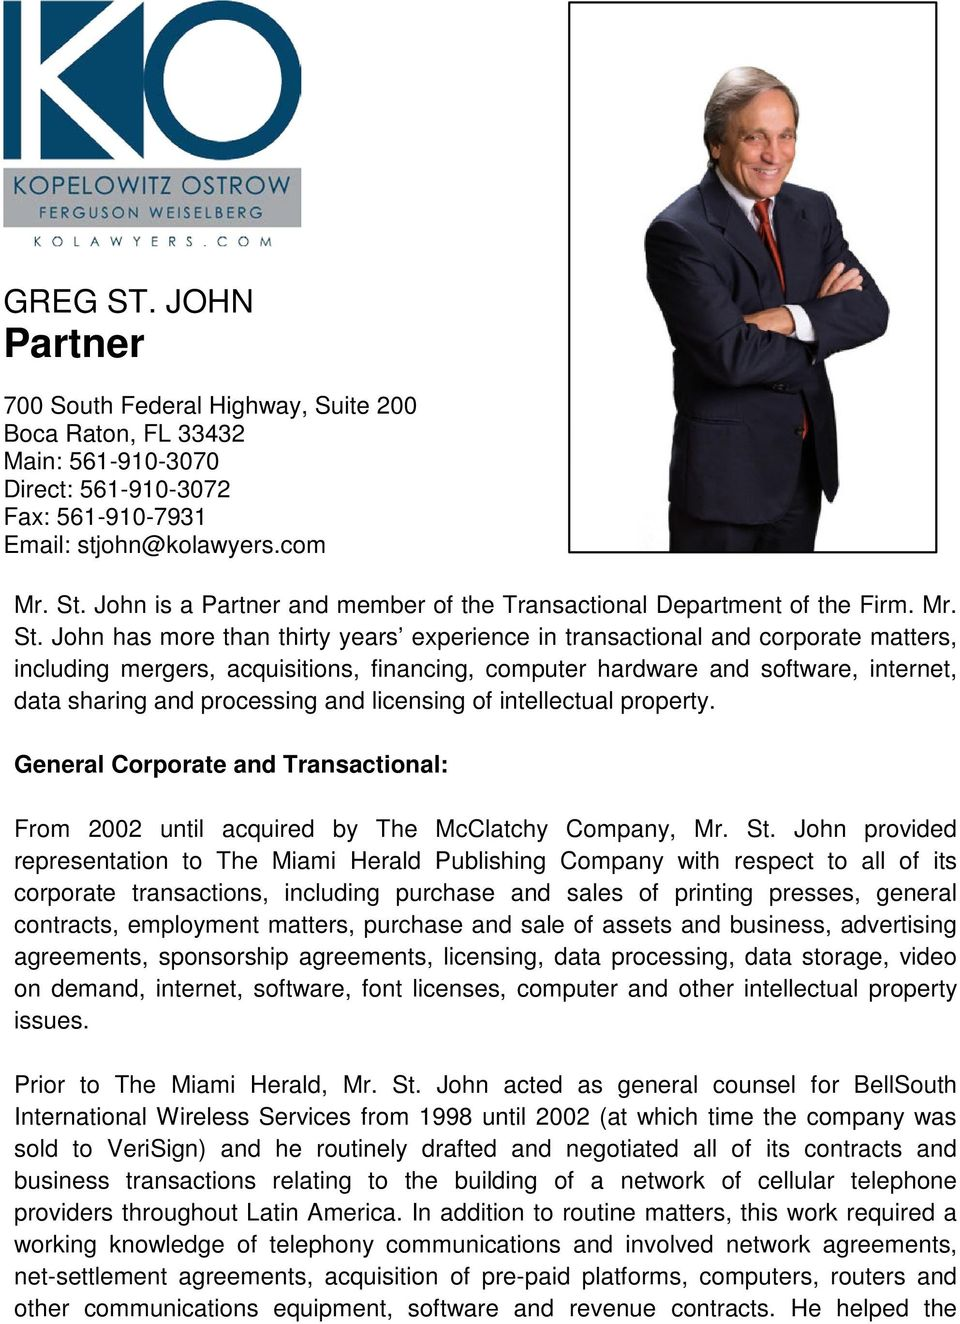 John has more than thirty years experience in transactional and corporate matters, including mergers, acquisitions, financing, computer hardware and software, internet, data sharing and processing